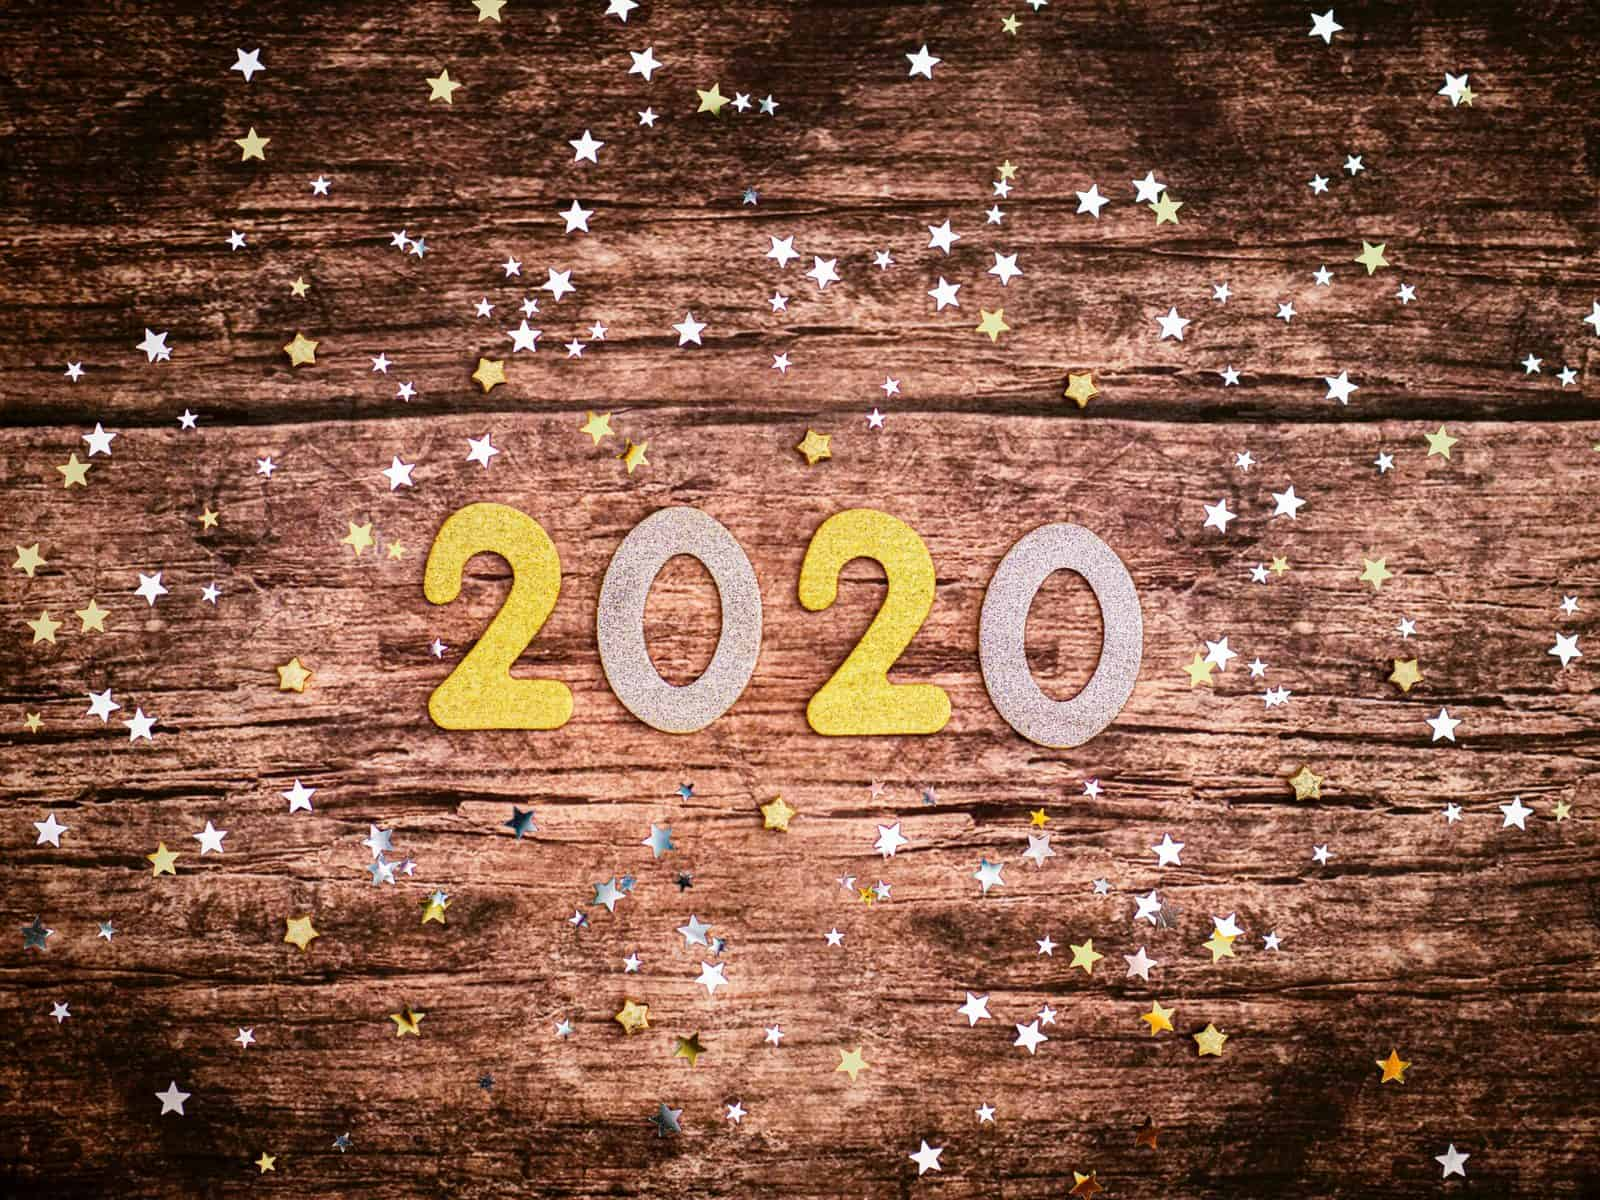 a wooden table top with the text 2020 in yellow and silver. Glitter is scattered on the table